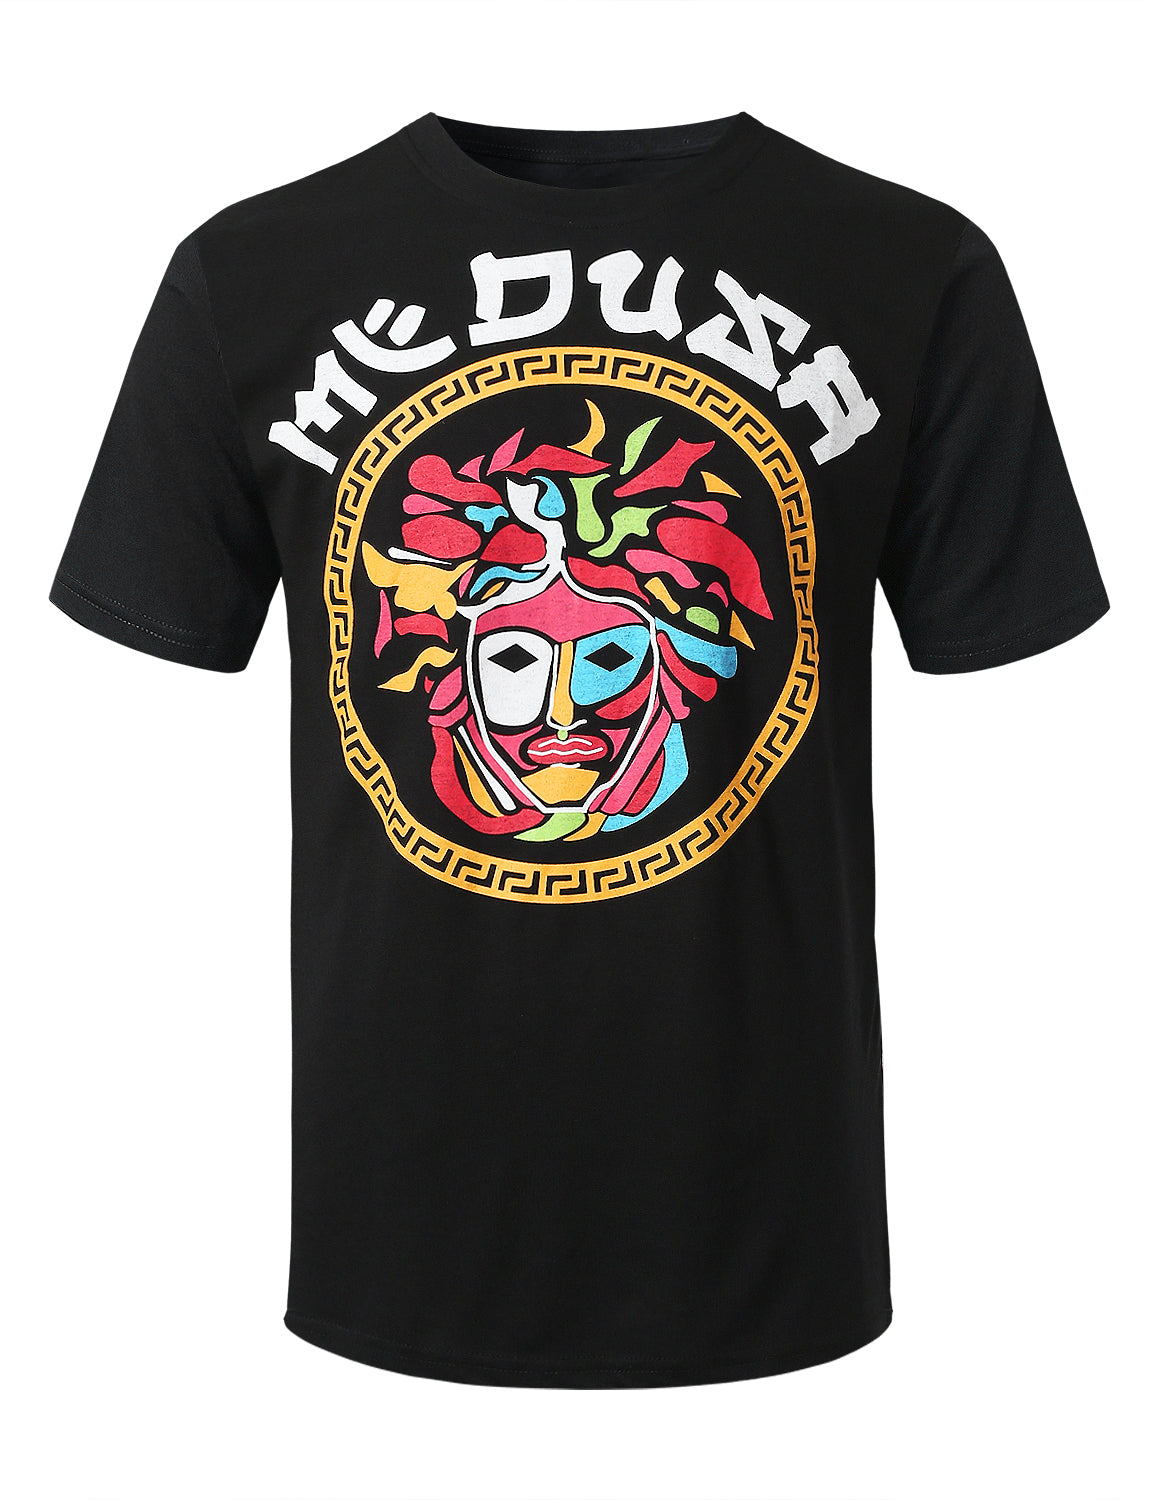 BLACK Colorful Medusa Graphic Print T-shirt - URBANCREWS